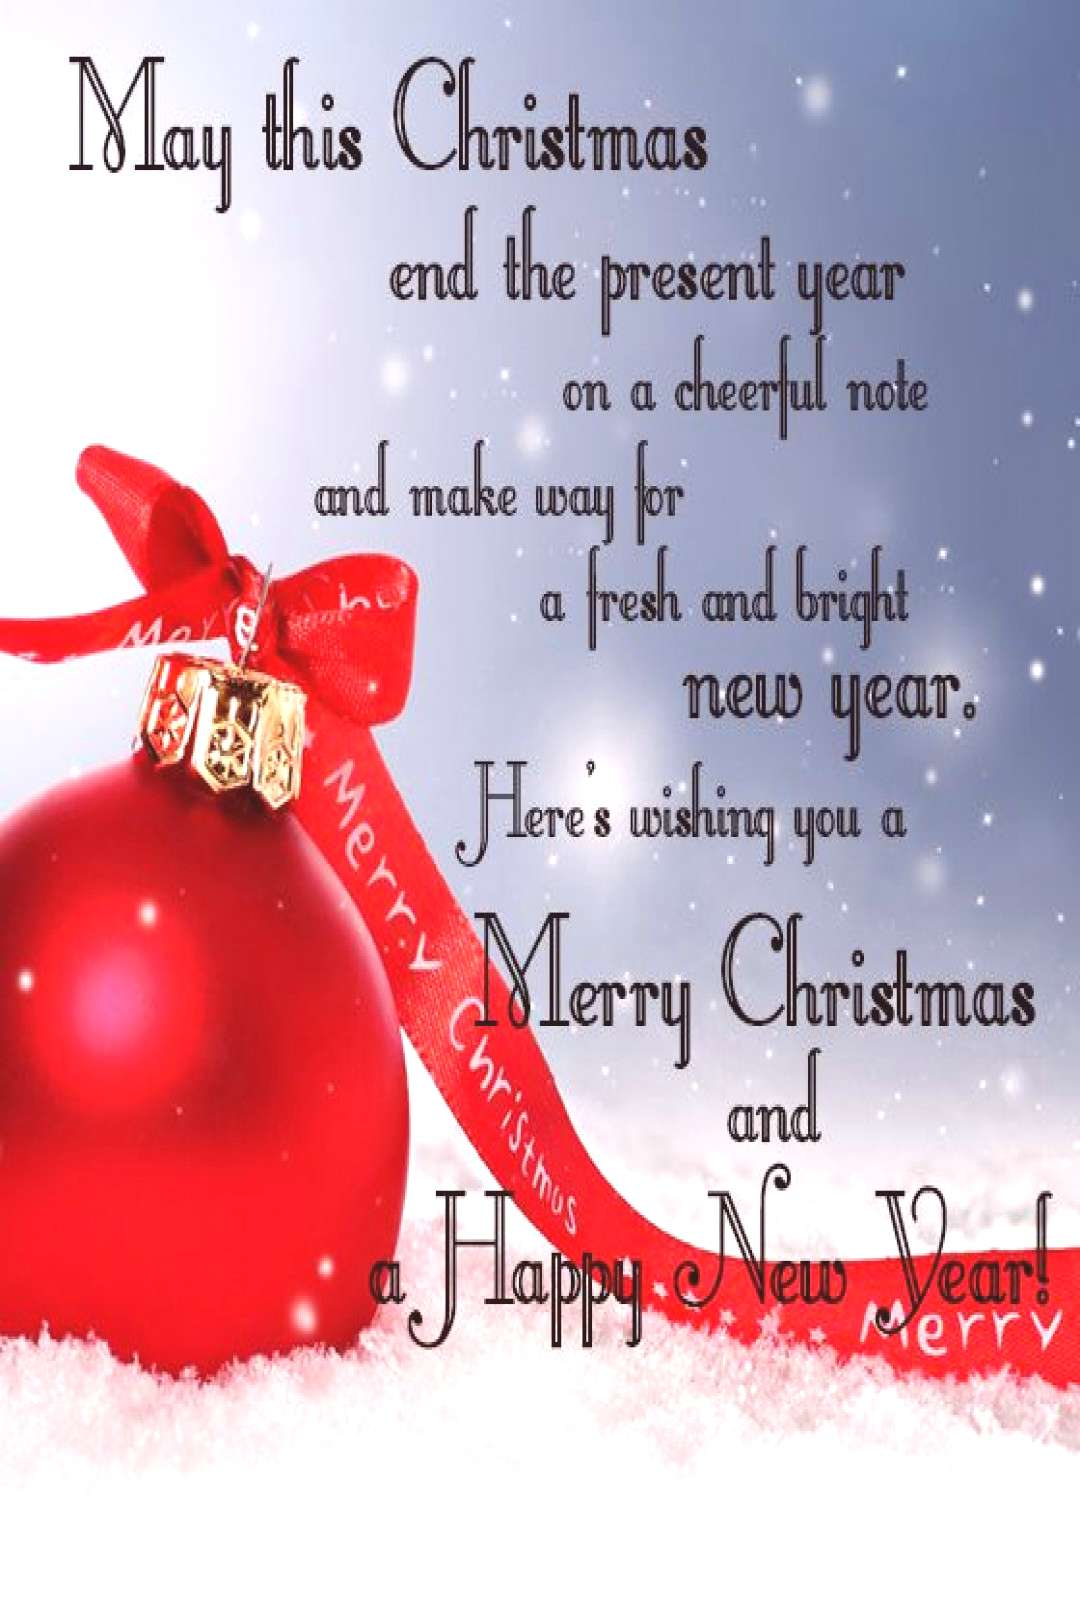 Merry-Christmas-Messages.